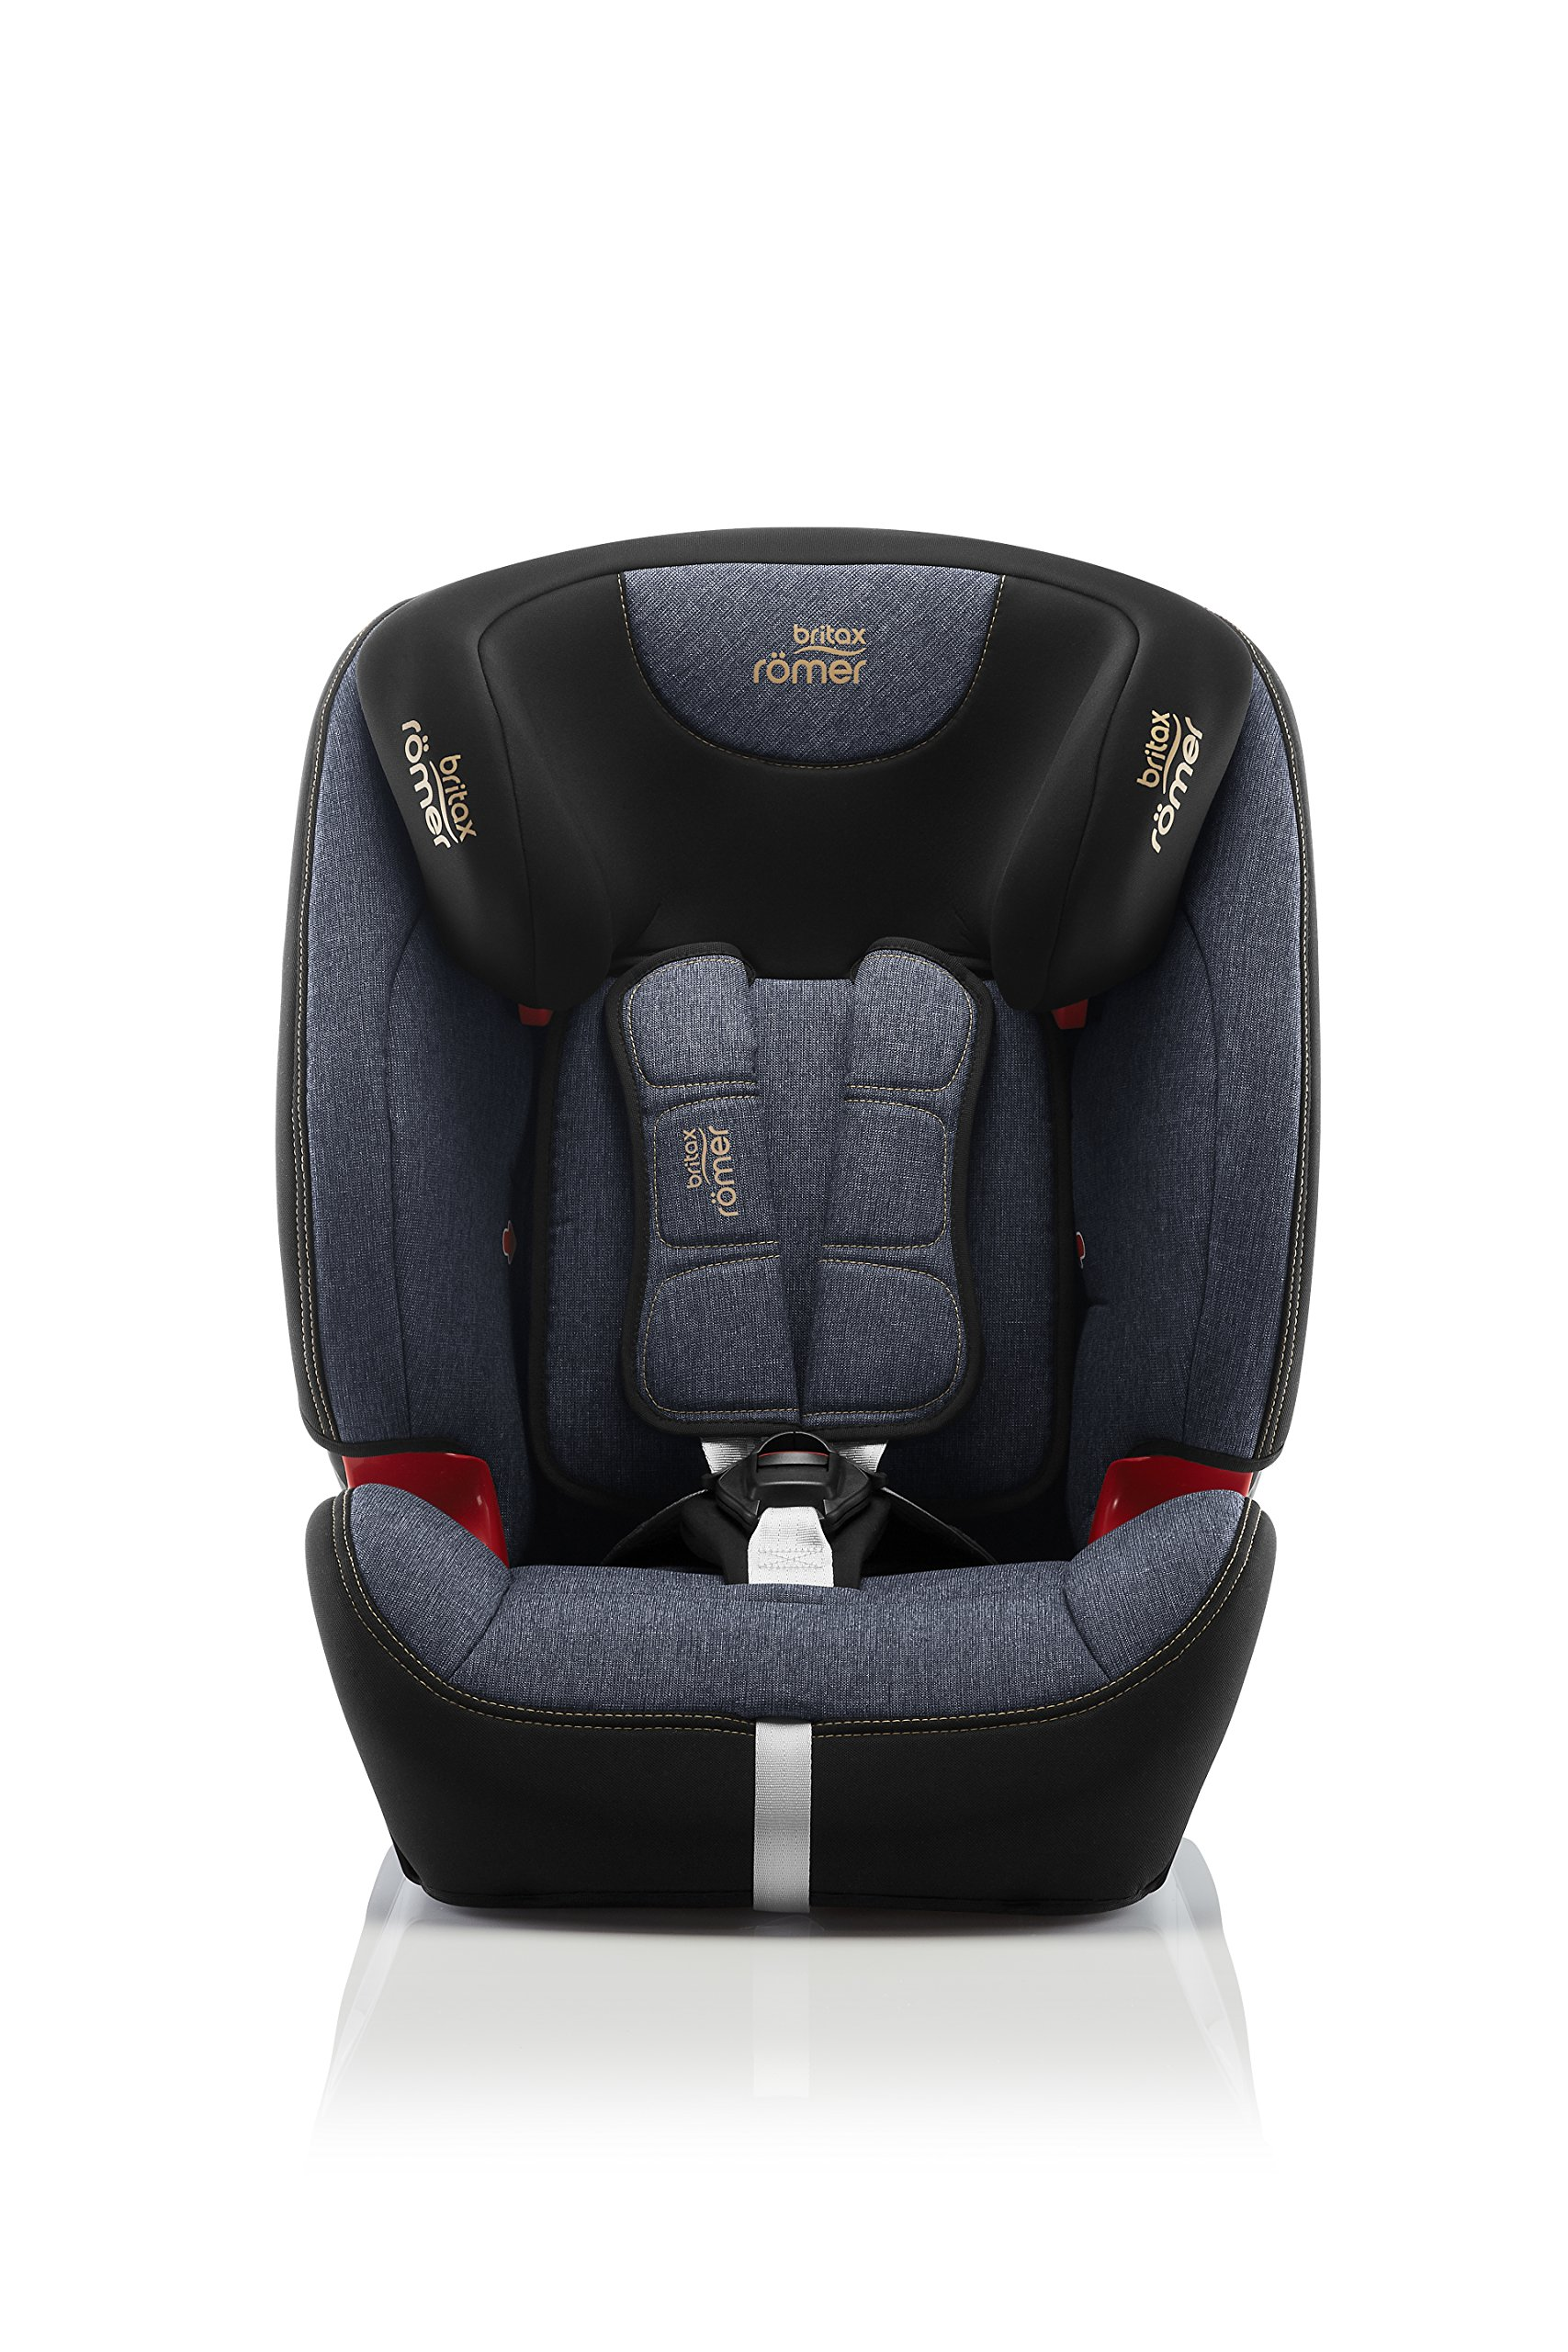 Britax Römer EVOLVA 1-2-3 SL SICT Group 1-2-3 (9-36kg) Car Seat - Blue Marble  This EVOLVA 1-2-3 SL SICT will come in a Blue Marble design cover which is made from a more premium fabric with extra detailing Enhanced Side Impact Protection (SICT) minimises the force of an impact in a side collision CLICK & SAFE audible harness system for that extra reassurance when securing your child in the seat 2